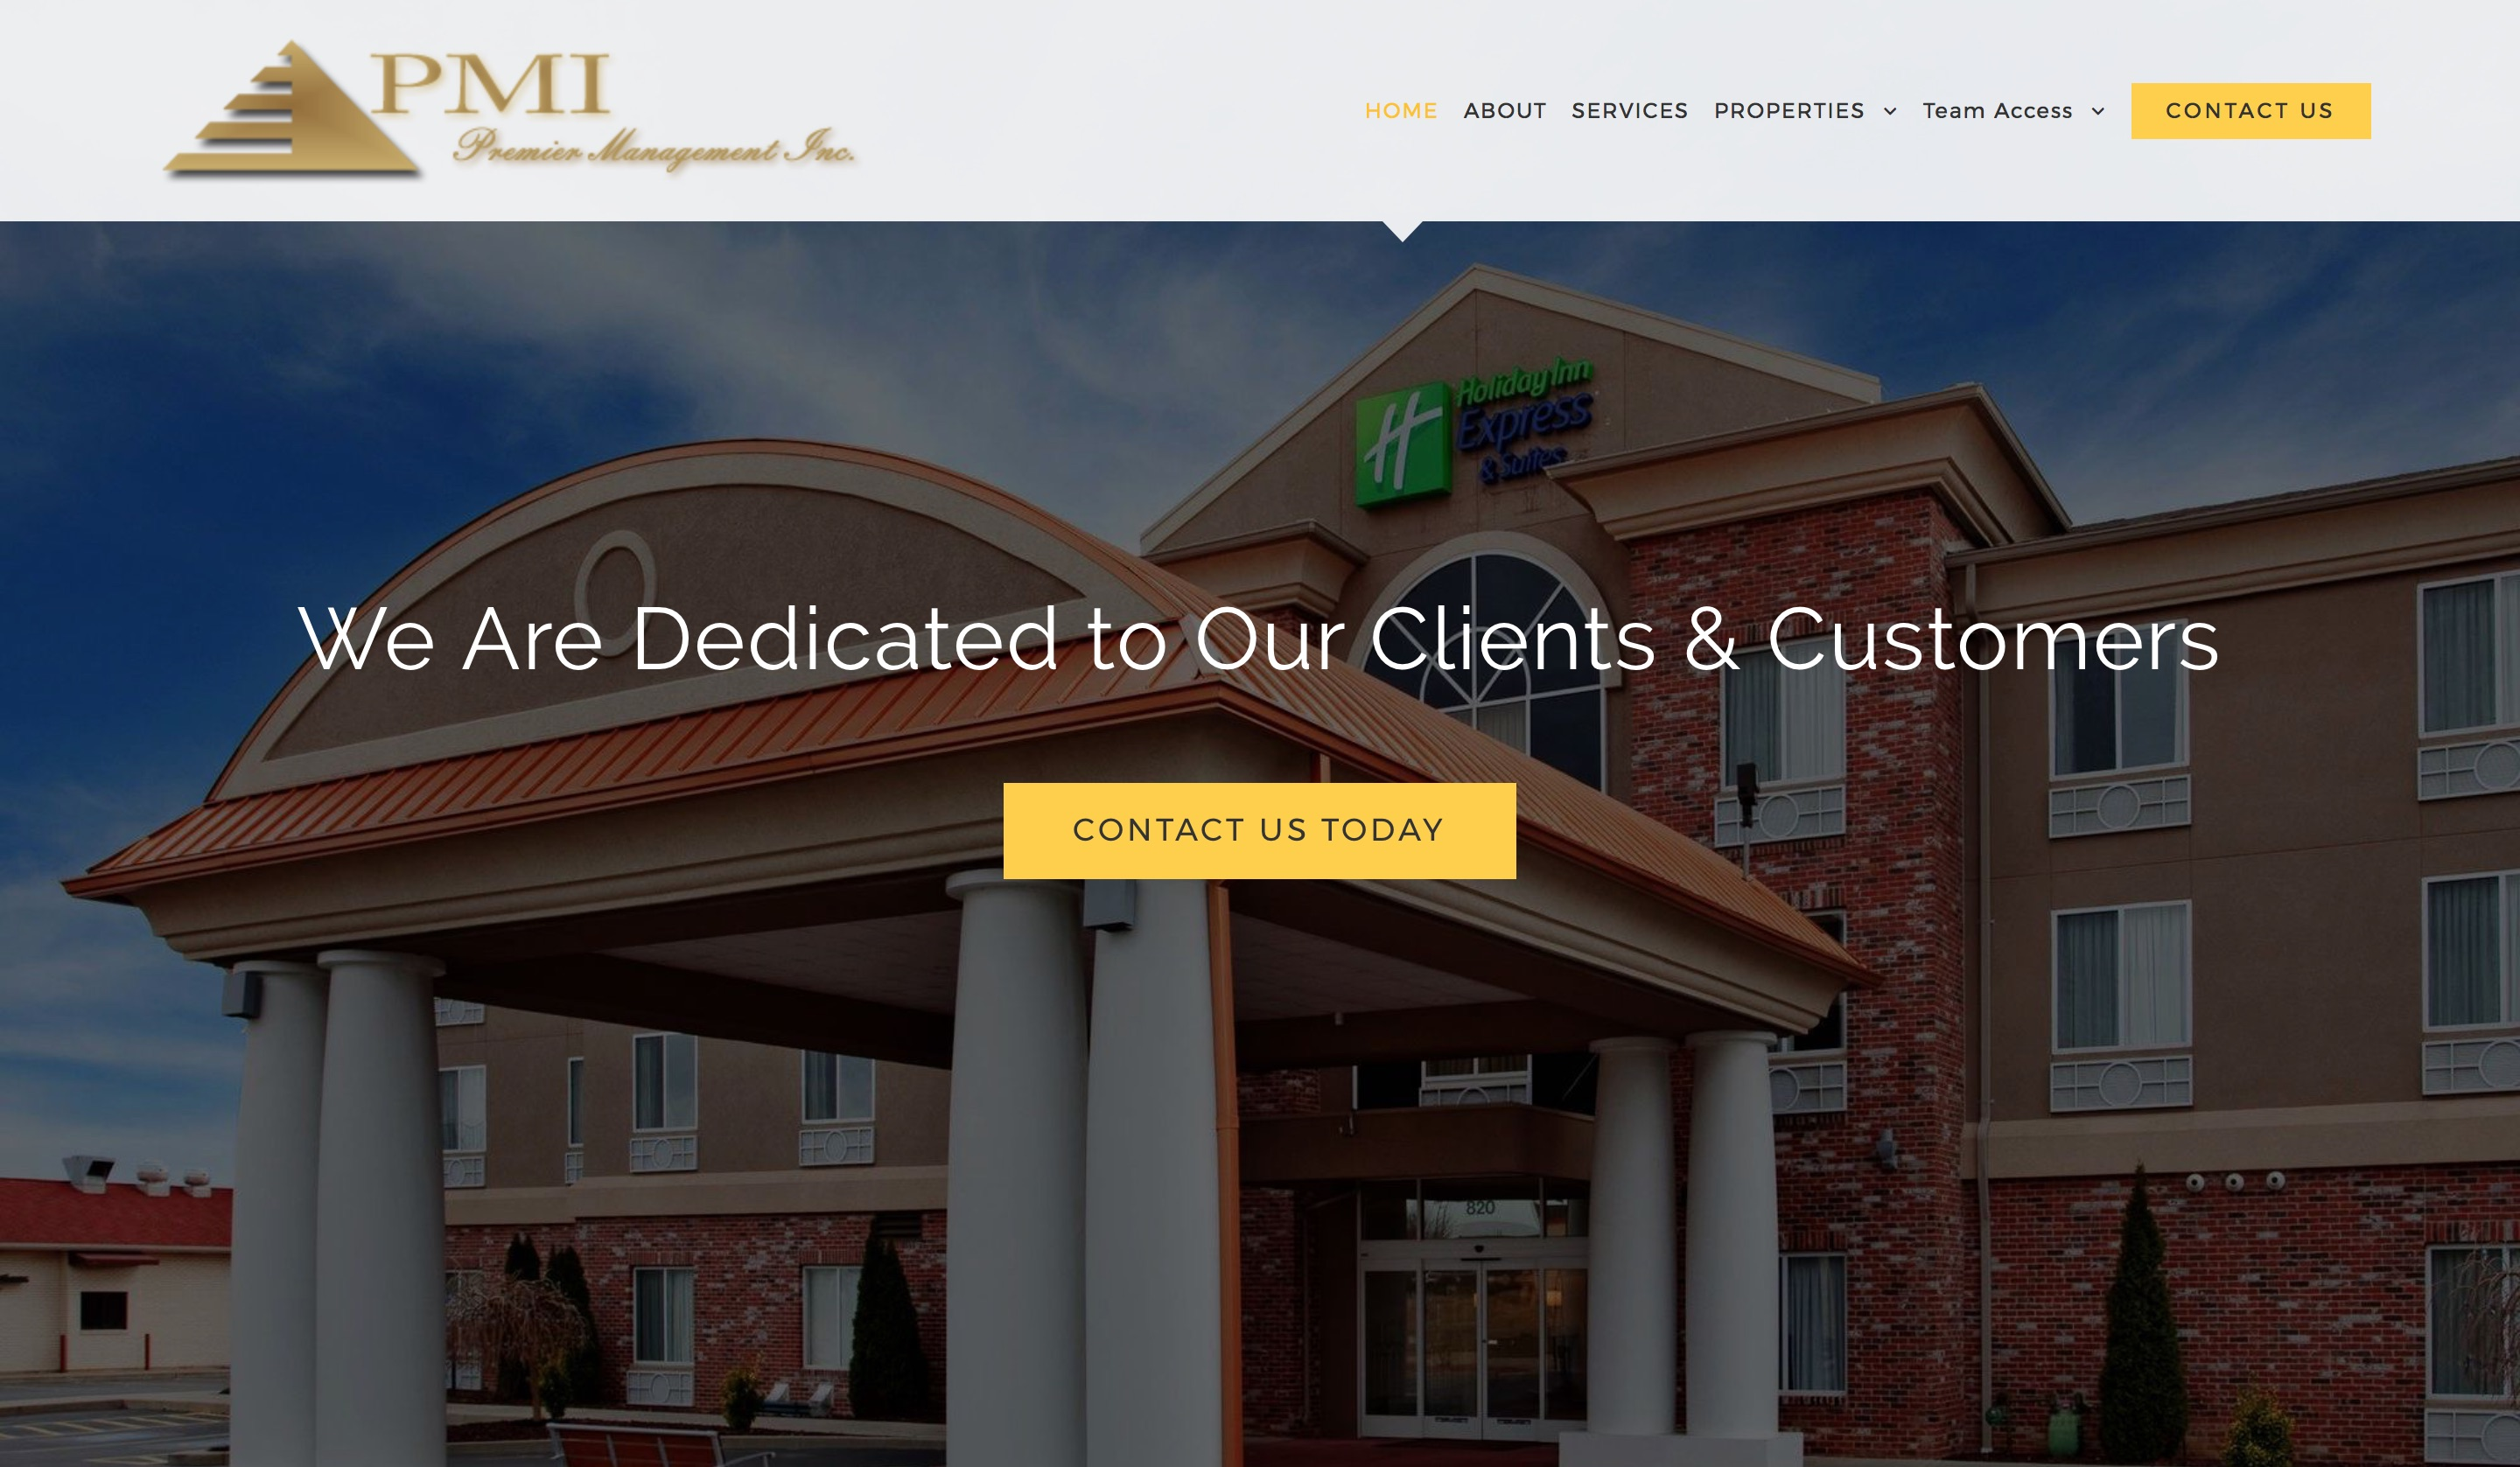 Premier Management Inc – Website